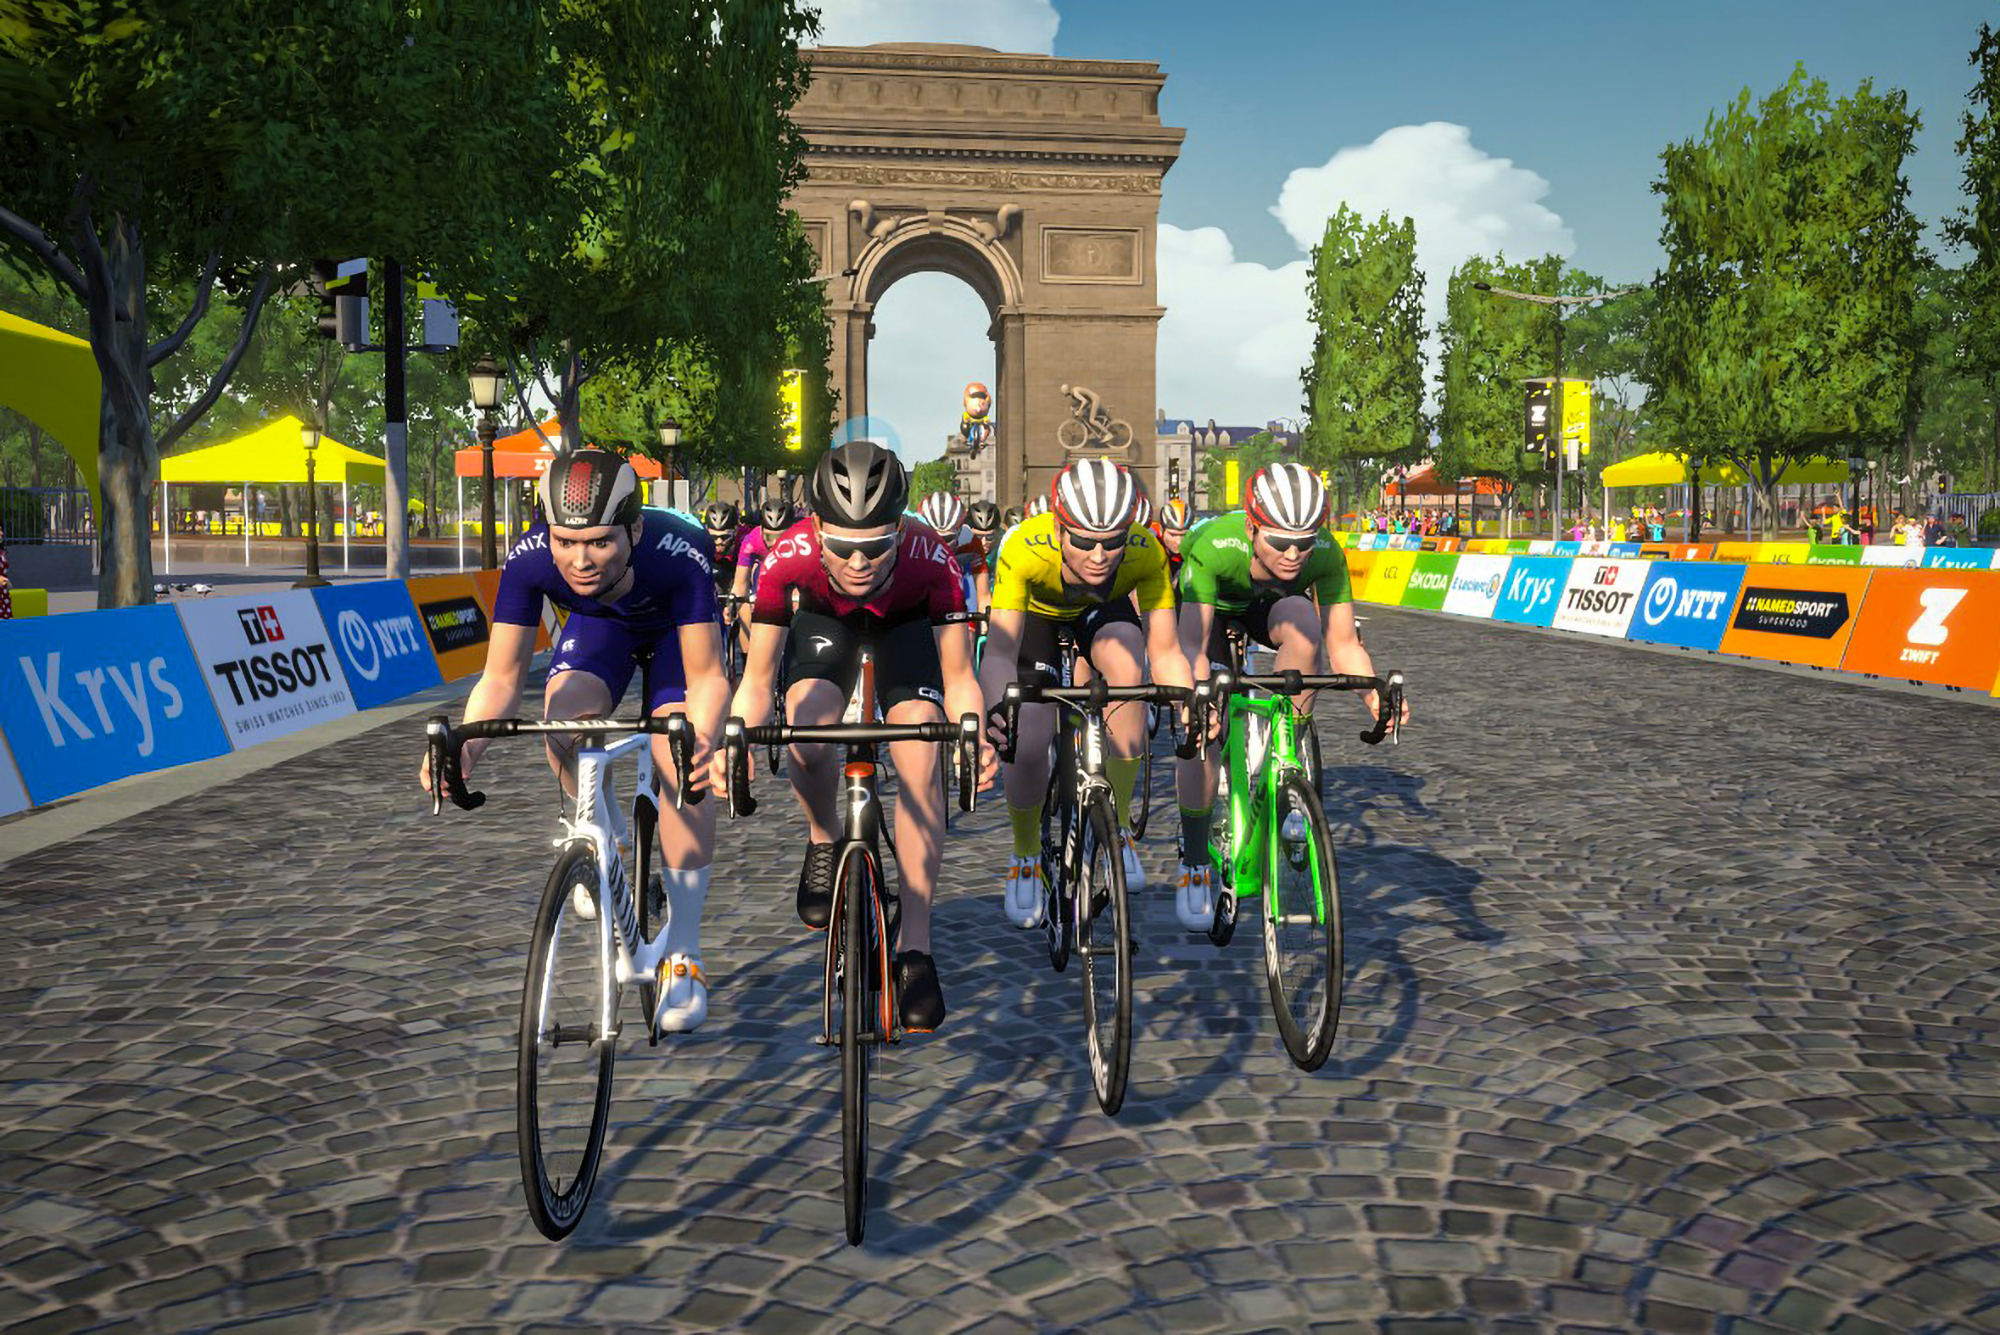 Tibco Silicon Valley Bank And Ntt Pro Cycling Team Crowned Virtual Tour De France Champions On The Champs Elysees Zwift News